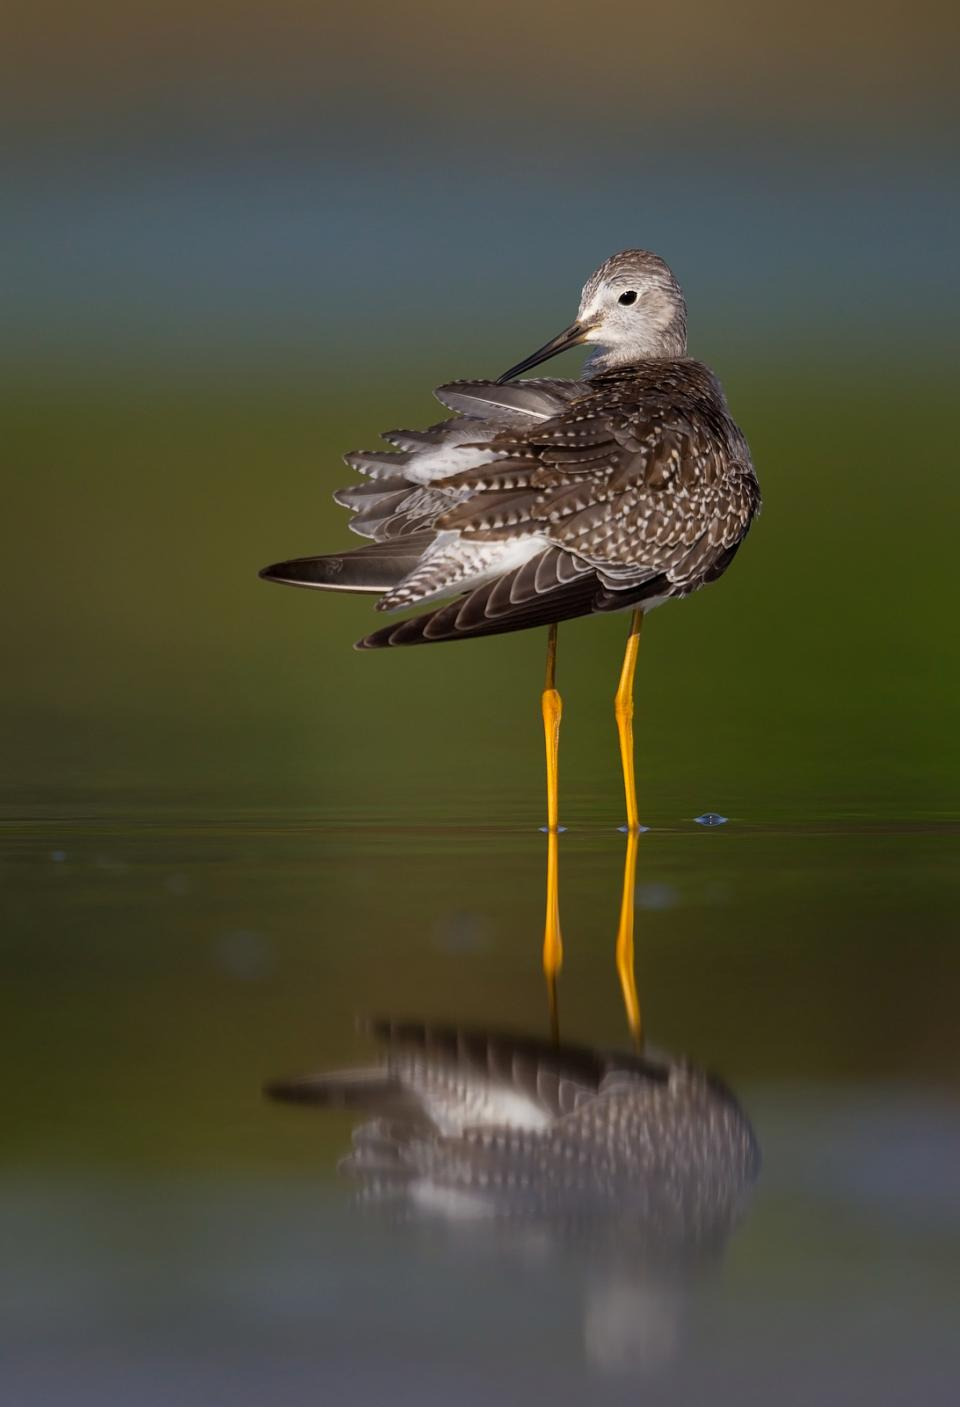 A Lesser Yellowlegs preens its feathers to keep them in top condition. 1/1600; f/5.6; ISO 200